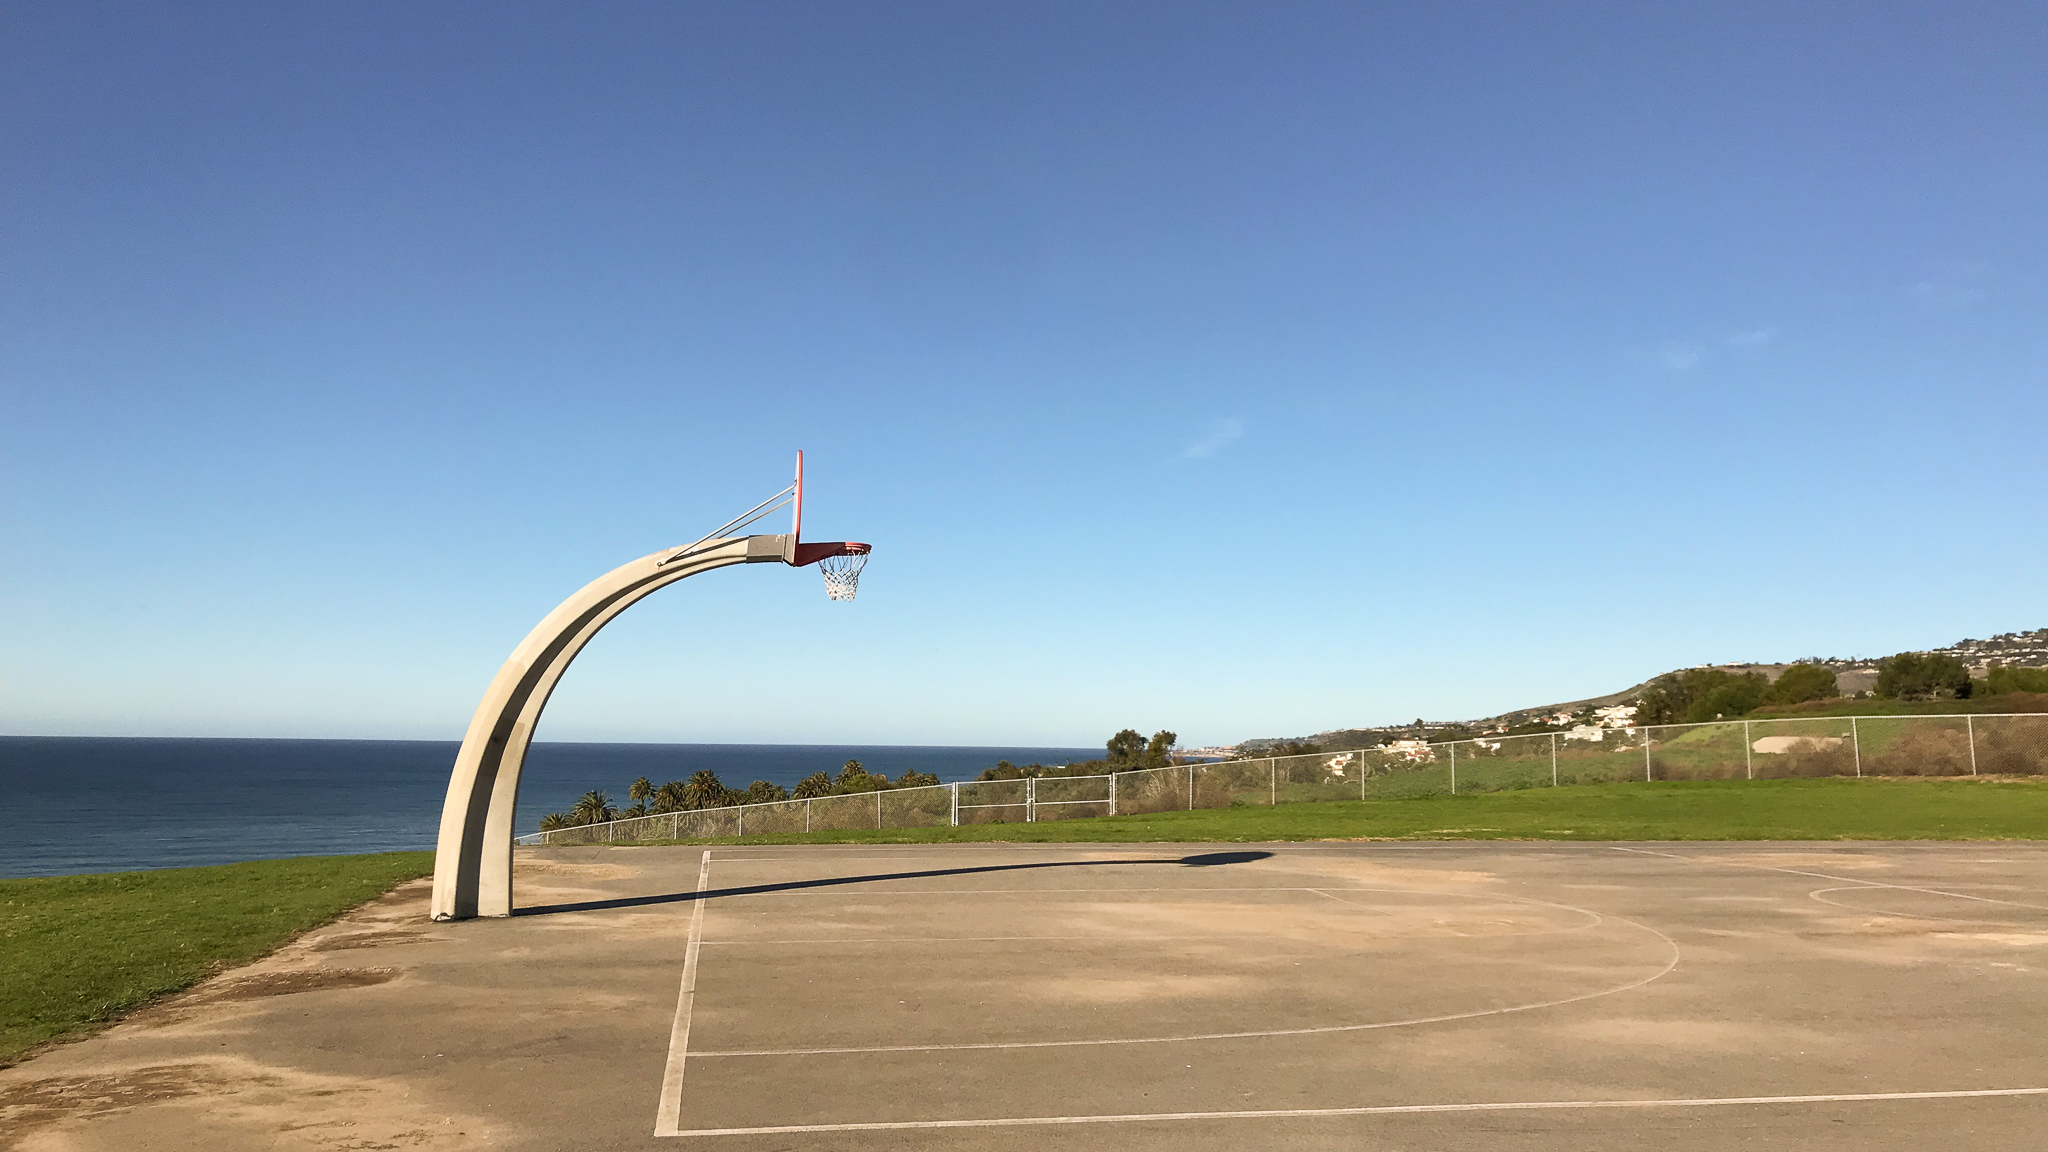 Angels Gate Park best basketball courts in Los Angeles